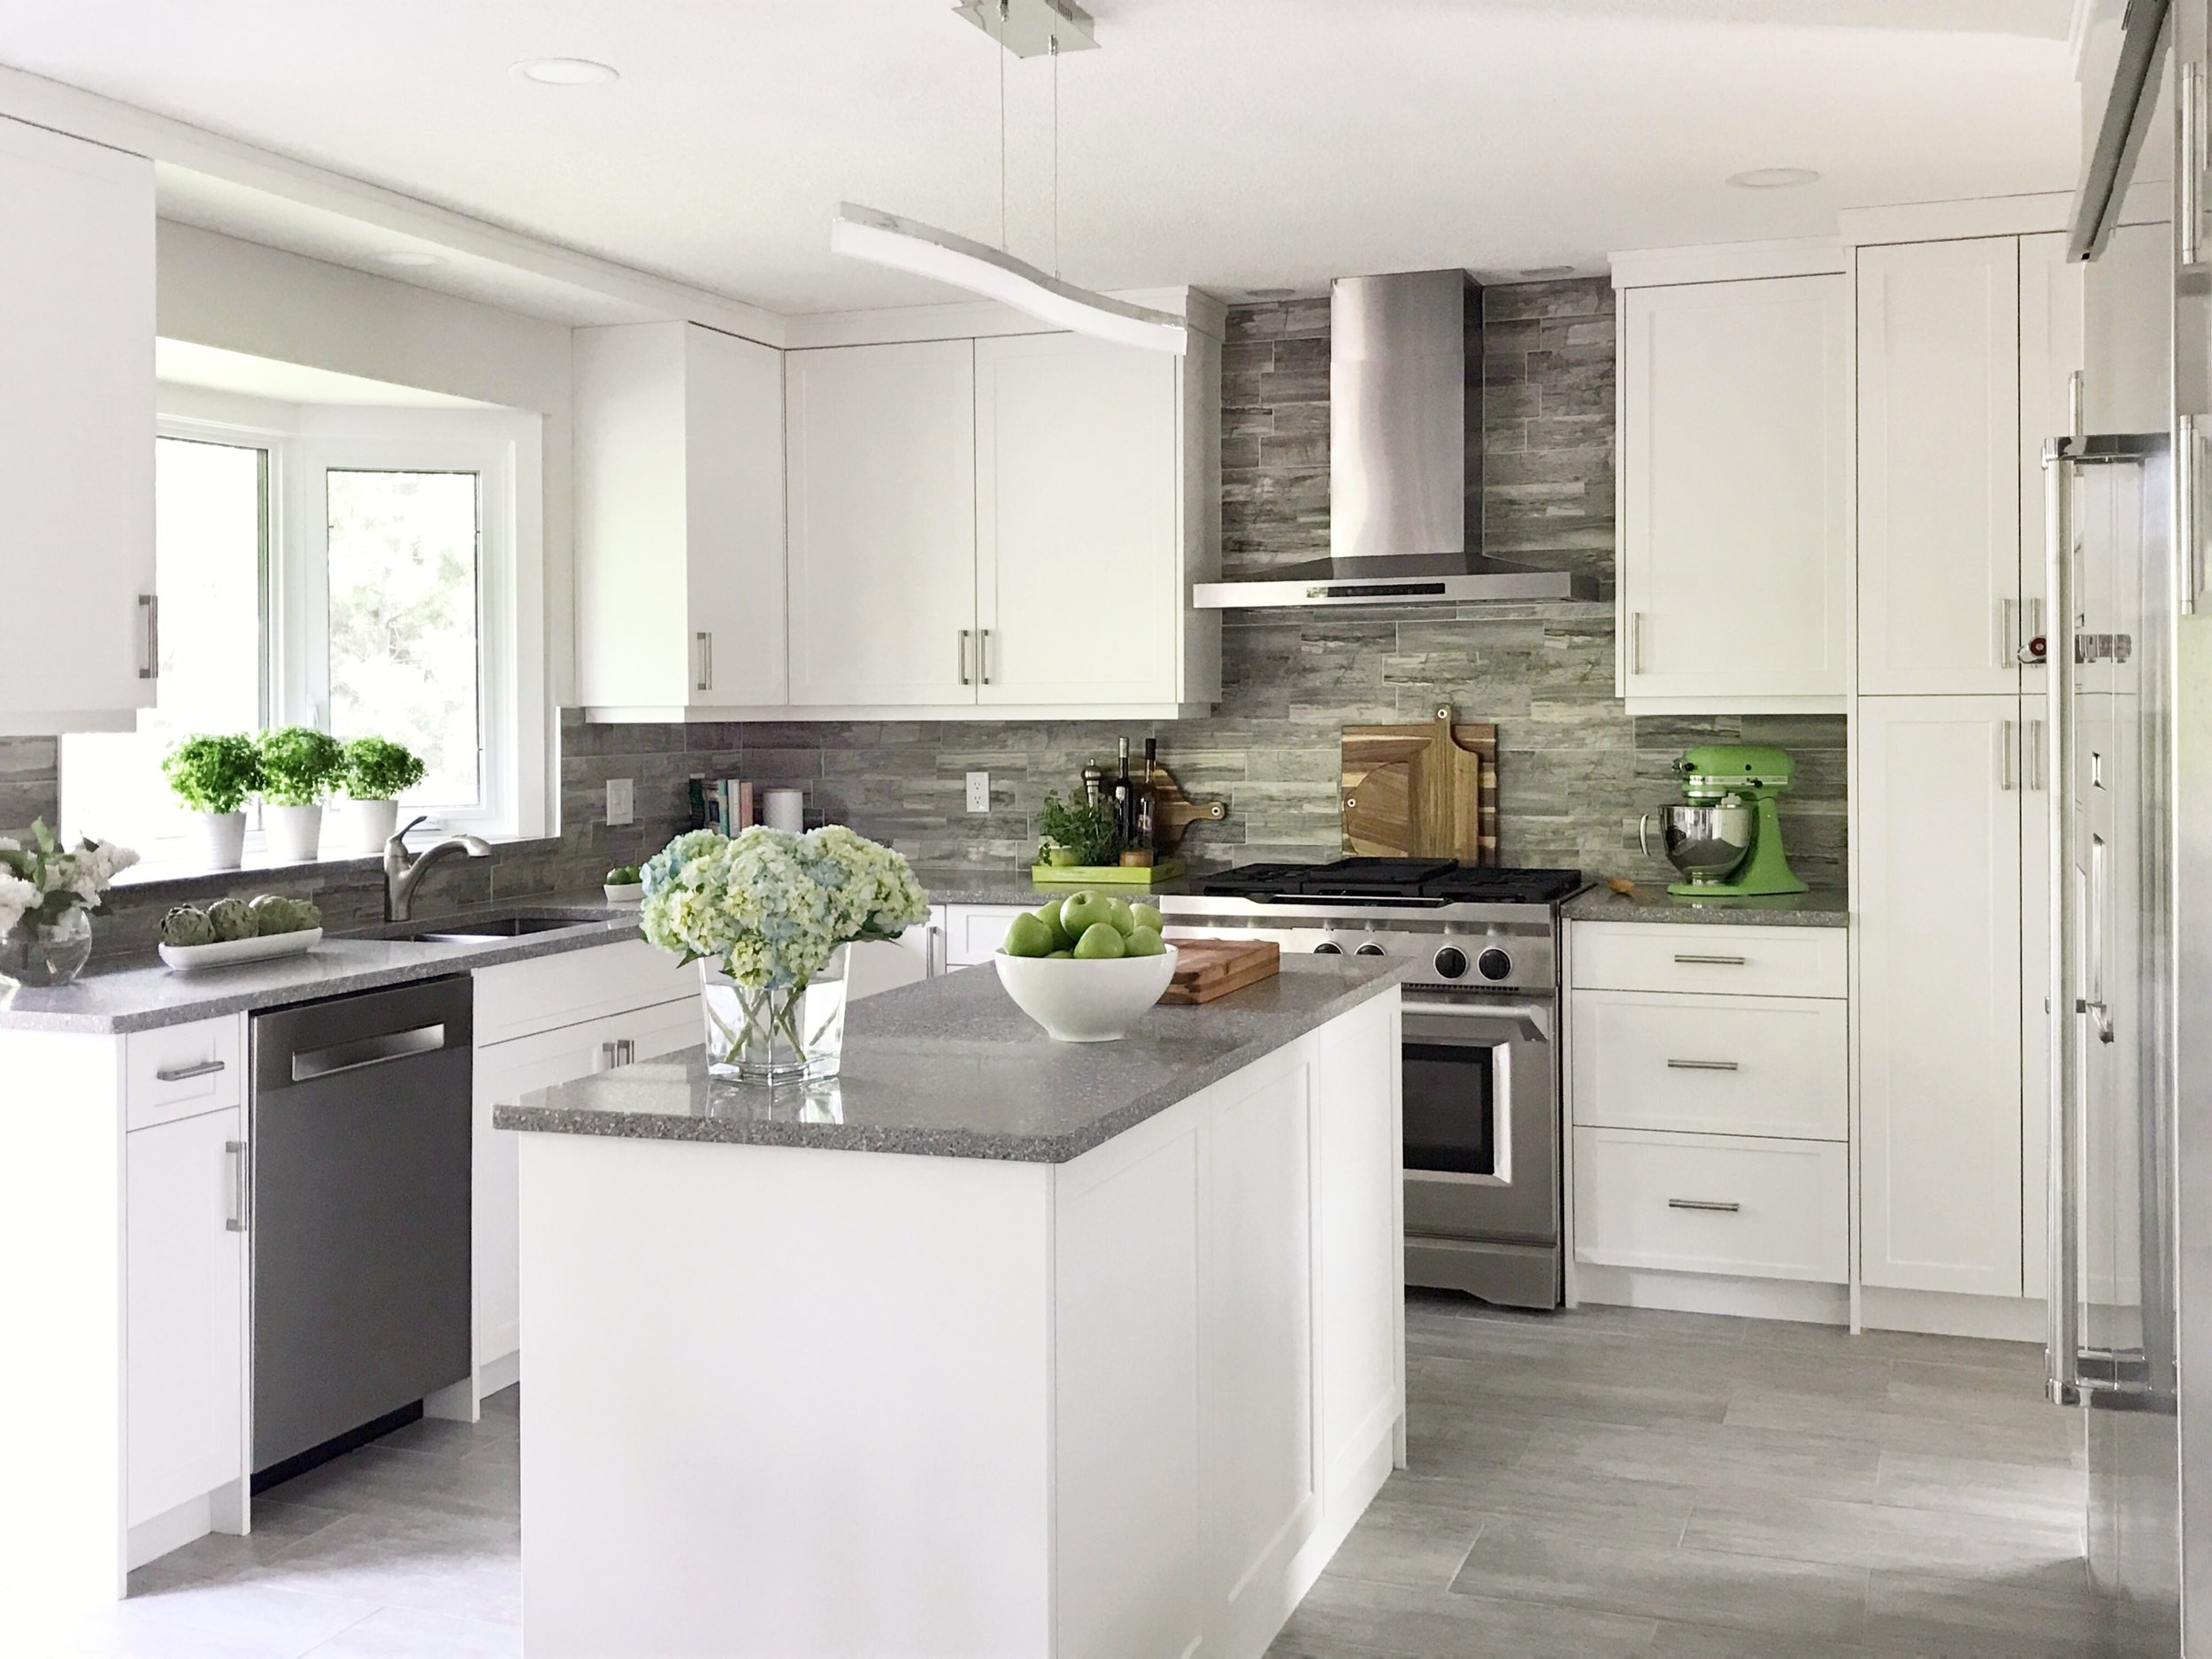 Kitchen Design-Renovation-Style Maven Decor Interior Design-Edmonton Canada